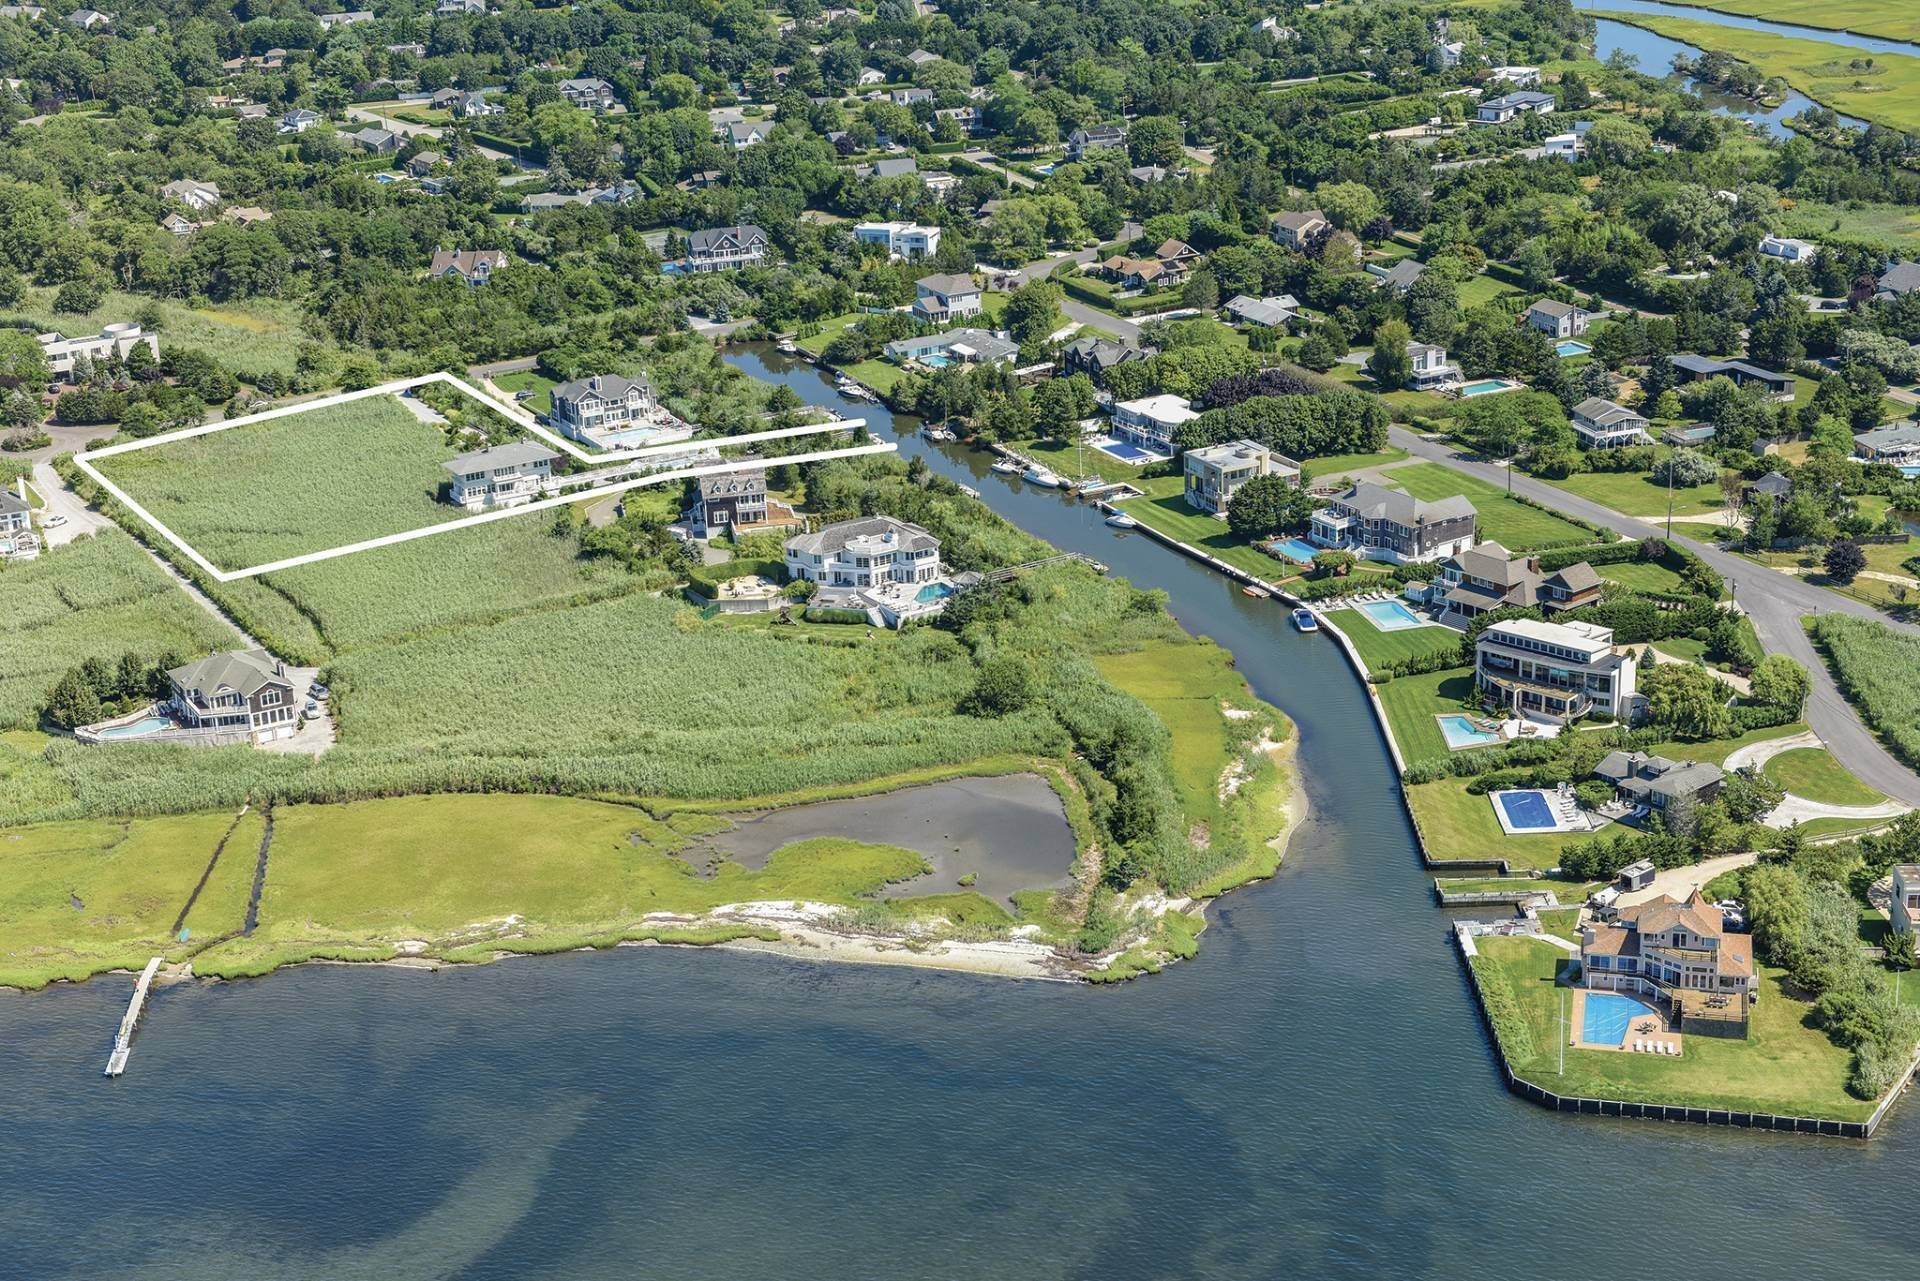 Single Family Homes for Sale at Celebrate Nature's Beauty: Sunsets, Water Views, Pool & Dock 5 Bay Meadow Lane, Westhampton, Southampton Town, NY 11977